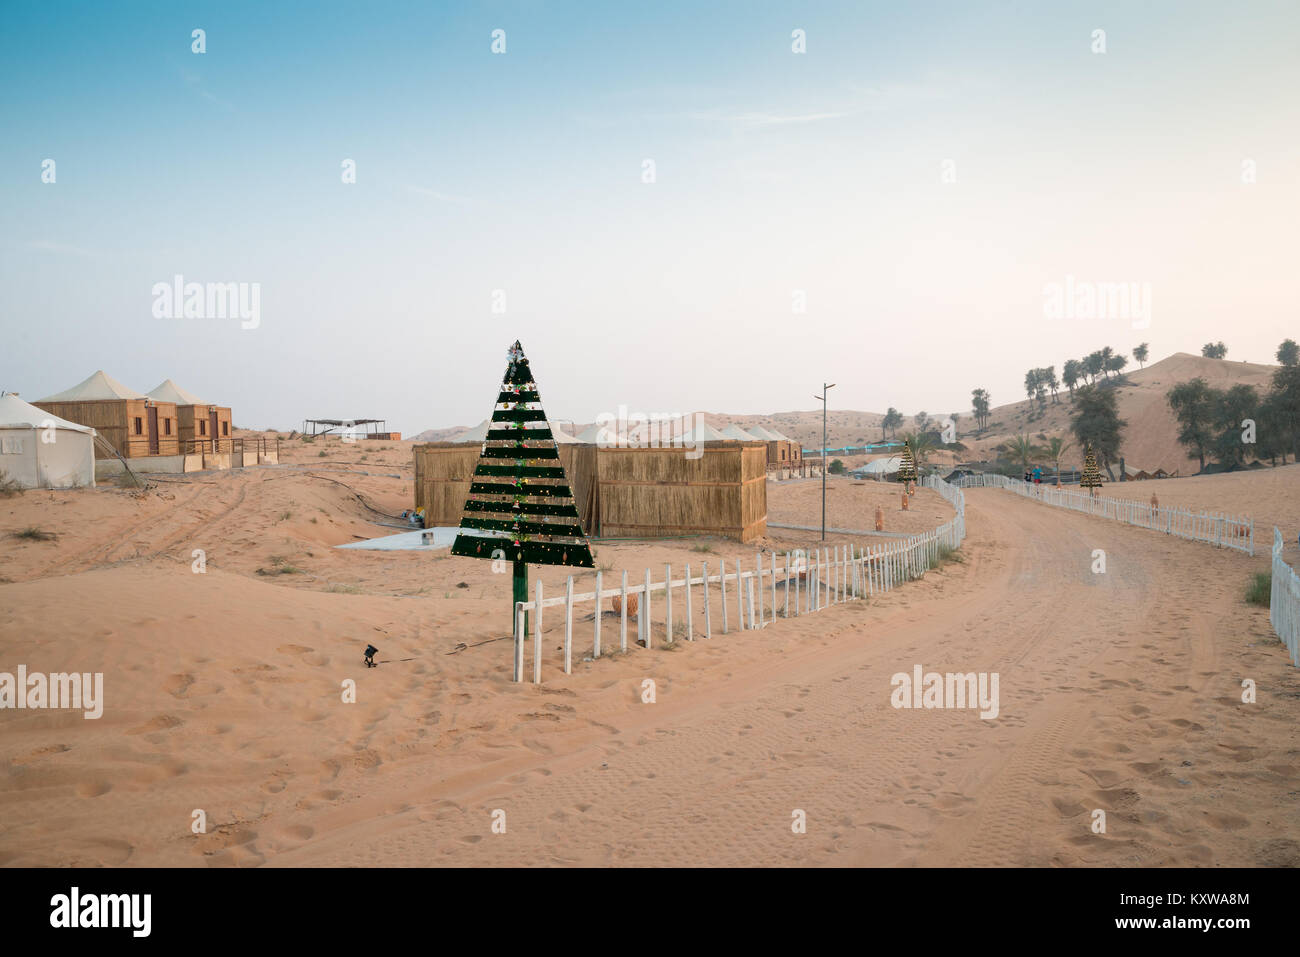 Christmas Tree In The Desert.Christmas Tree In A Bedouin Village In Rub Al Khali Desert